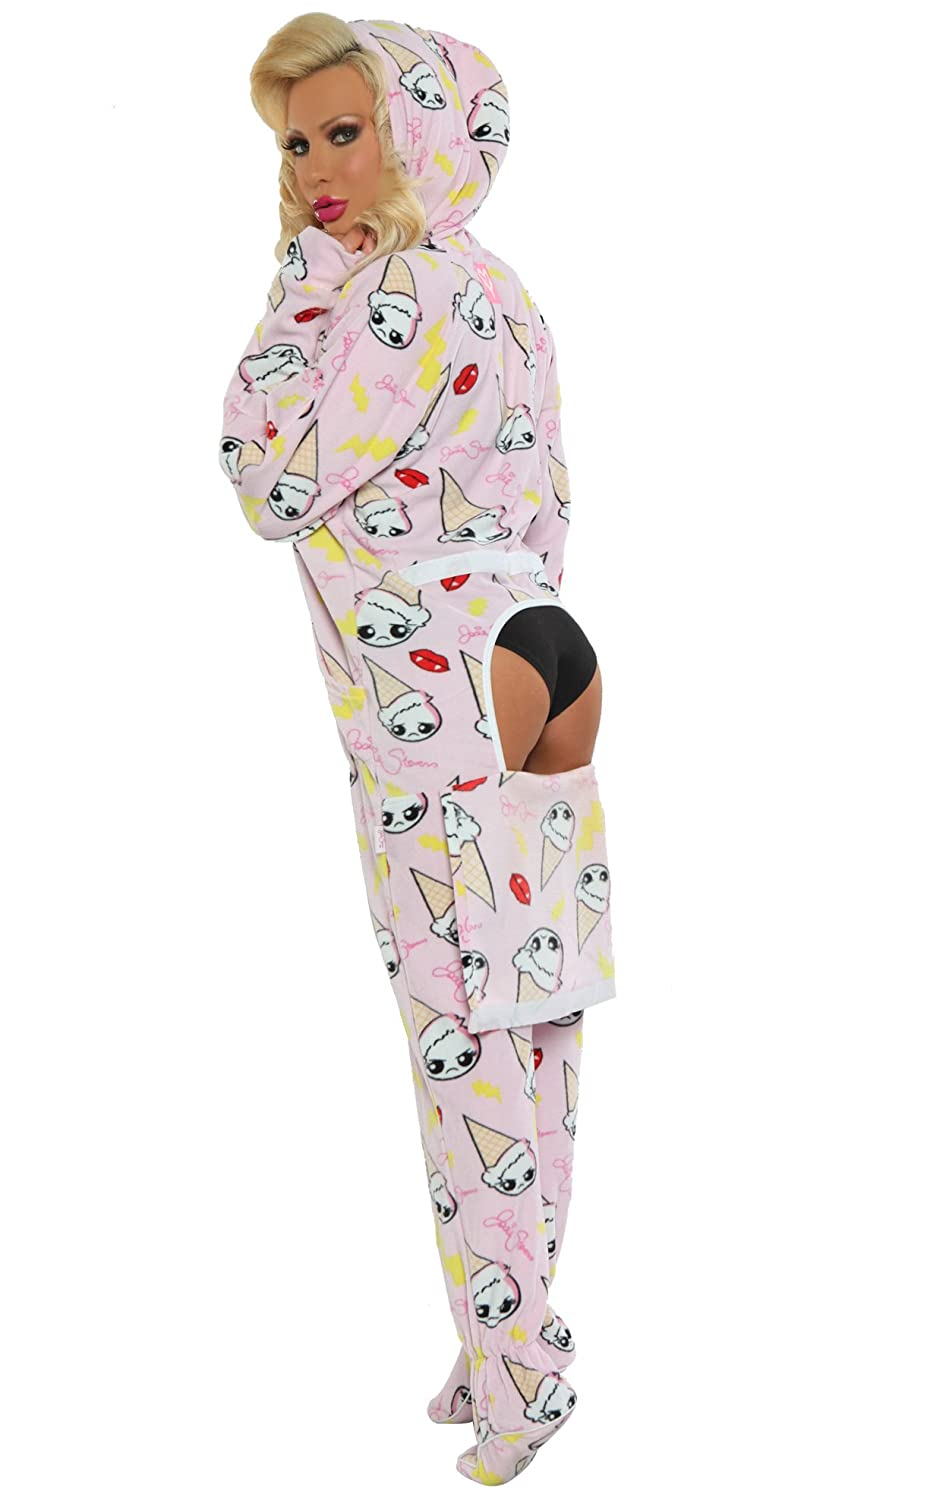 a5fbd9af5 Amazon.com  Jumpin Jammerz Josie Stevens Clumsy Cones Pink Adult ...